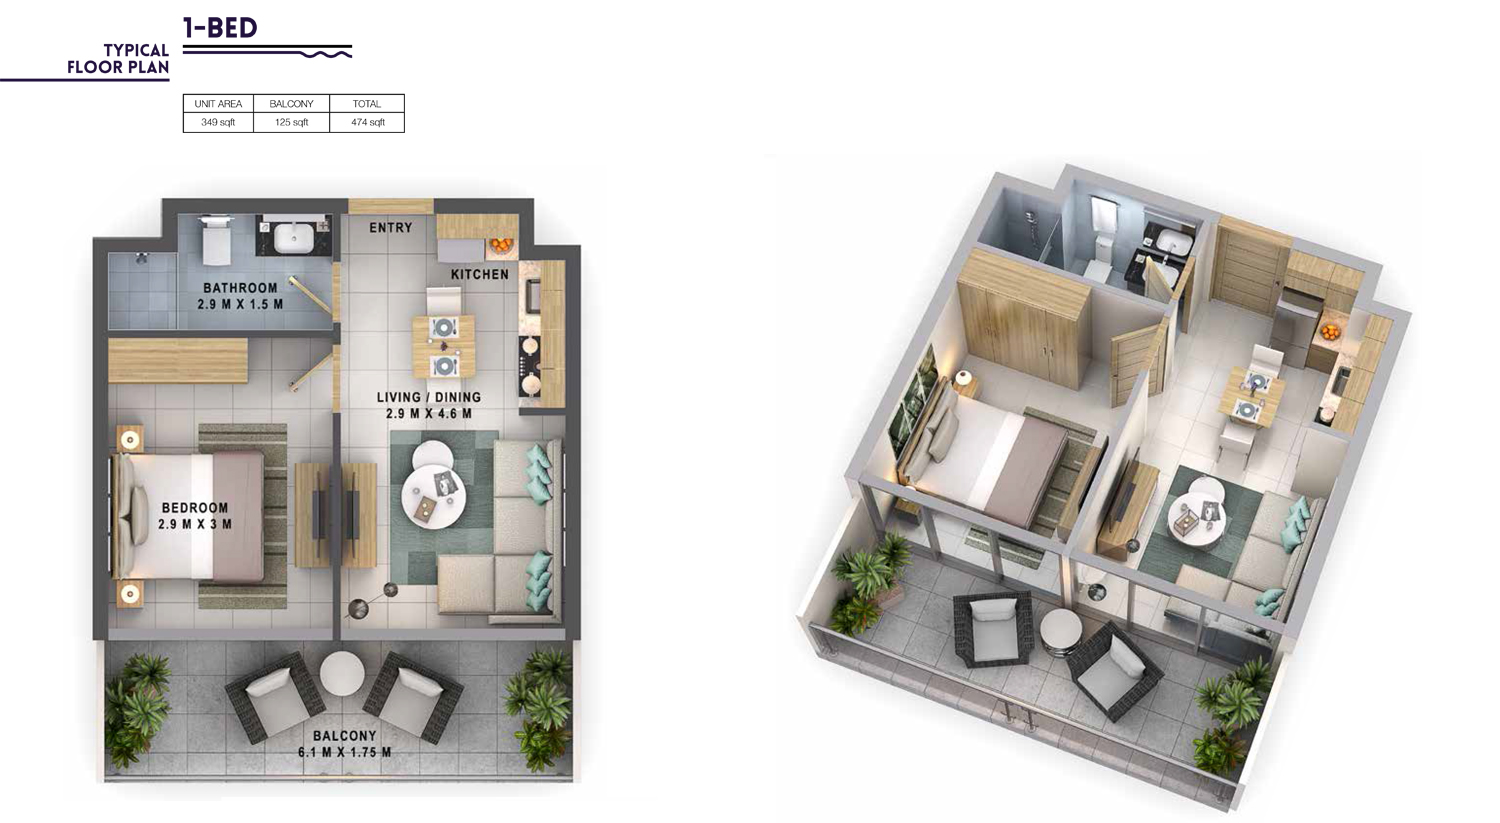 1 Bedroom  Size 474 sq.ft